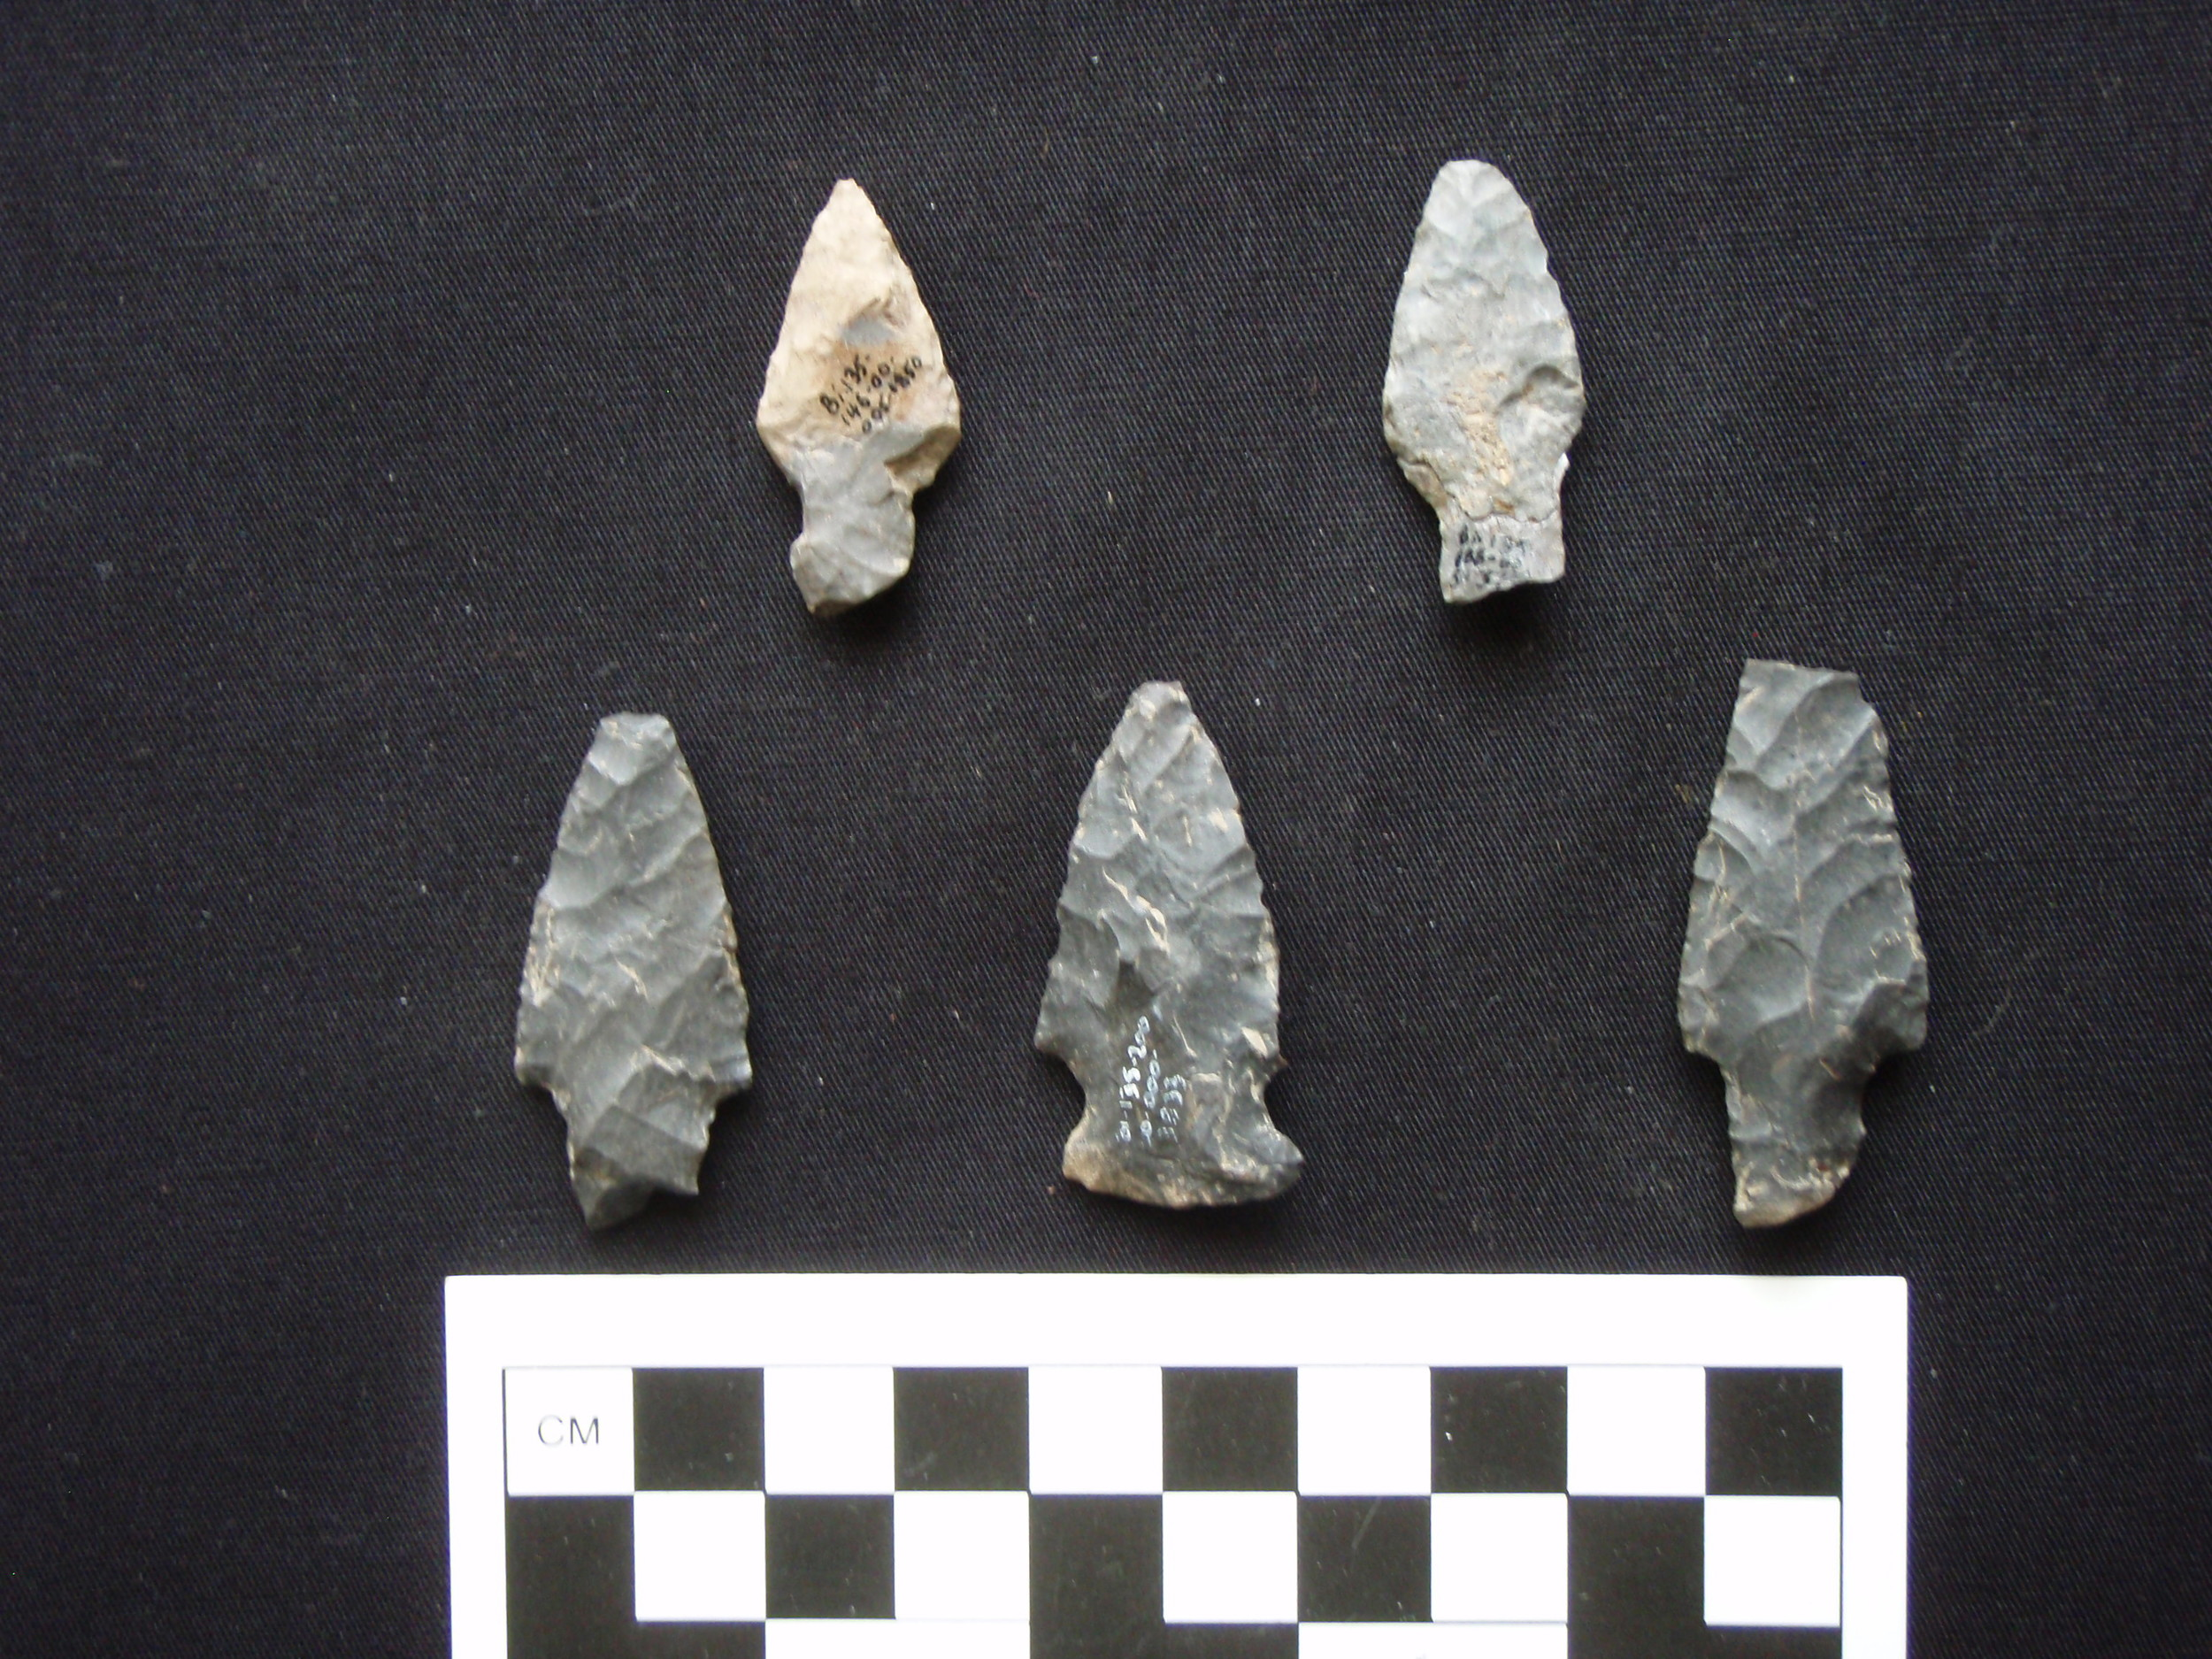 Lamoka Stemmed and side-notched points from a site in Central New York.  Photo Credit: Ed Curtin